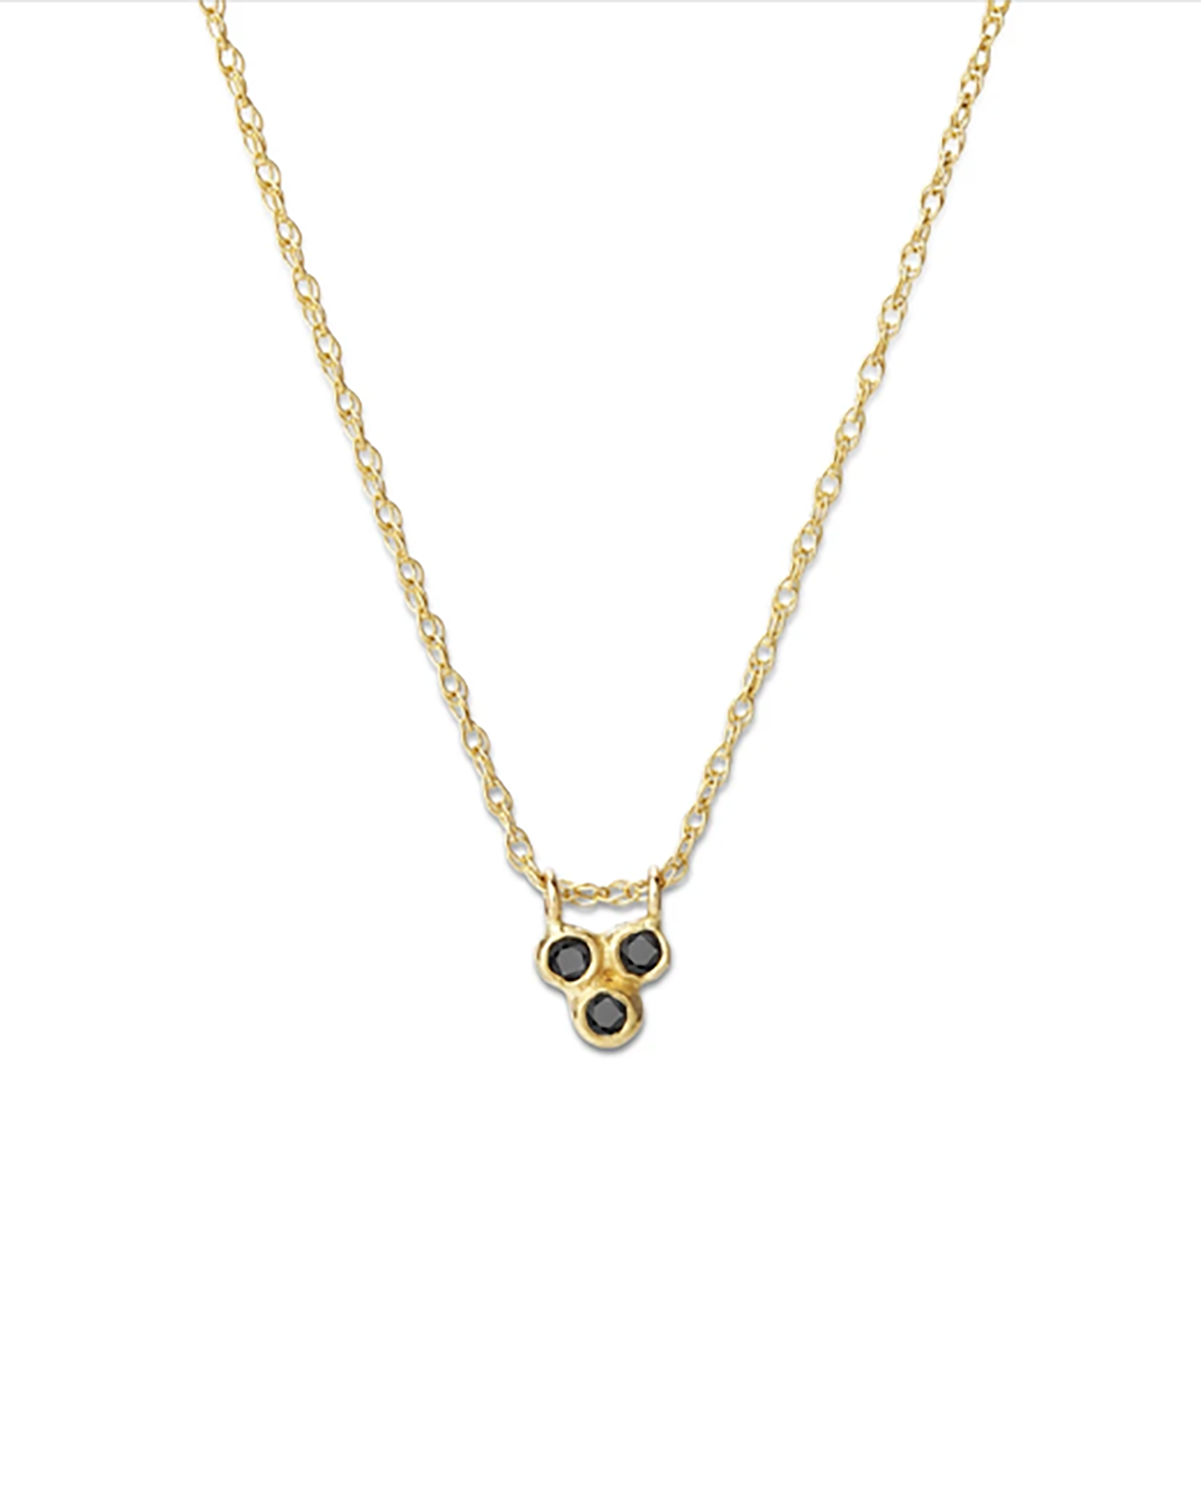 BLANCA MONROS GOMEZ - TRIPLE SEED NECKLACE - BLACK DIAMOND